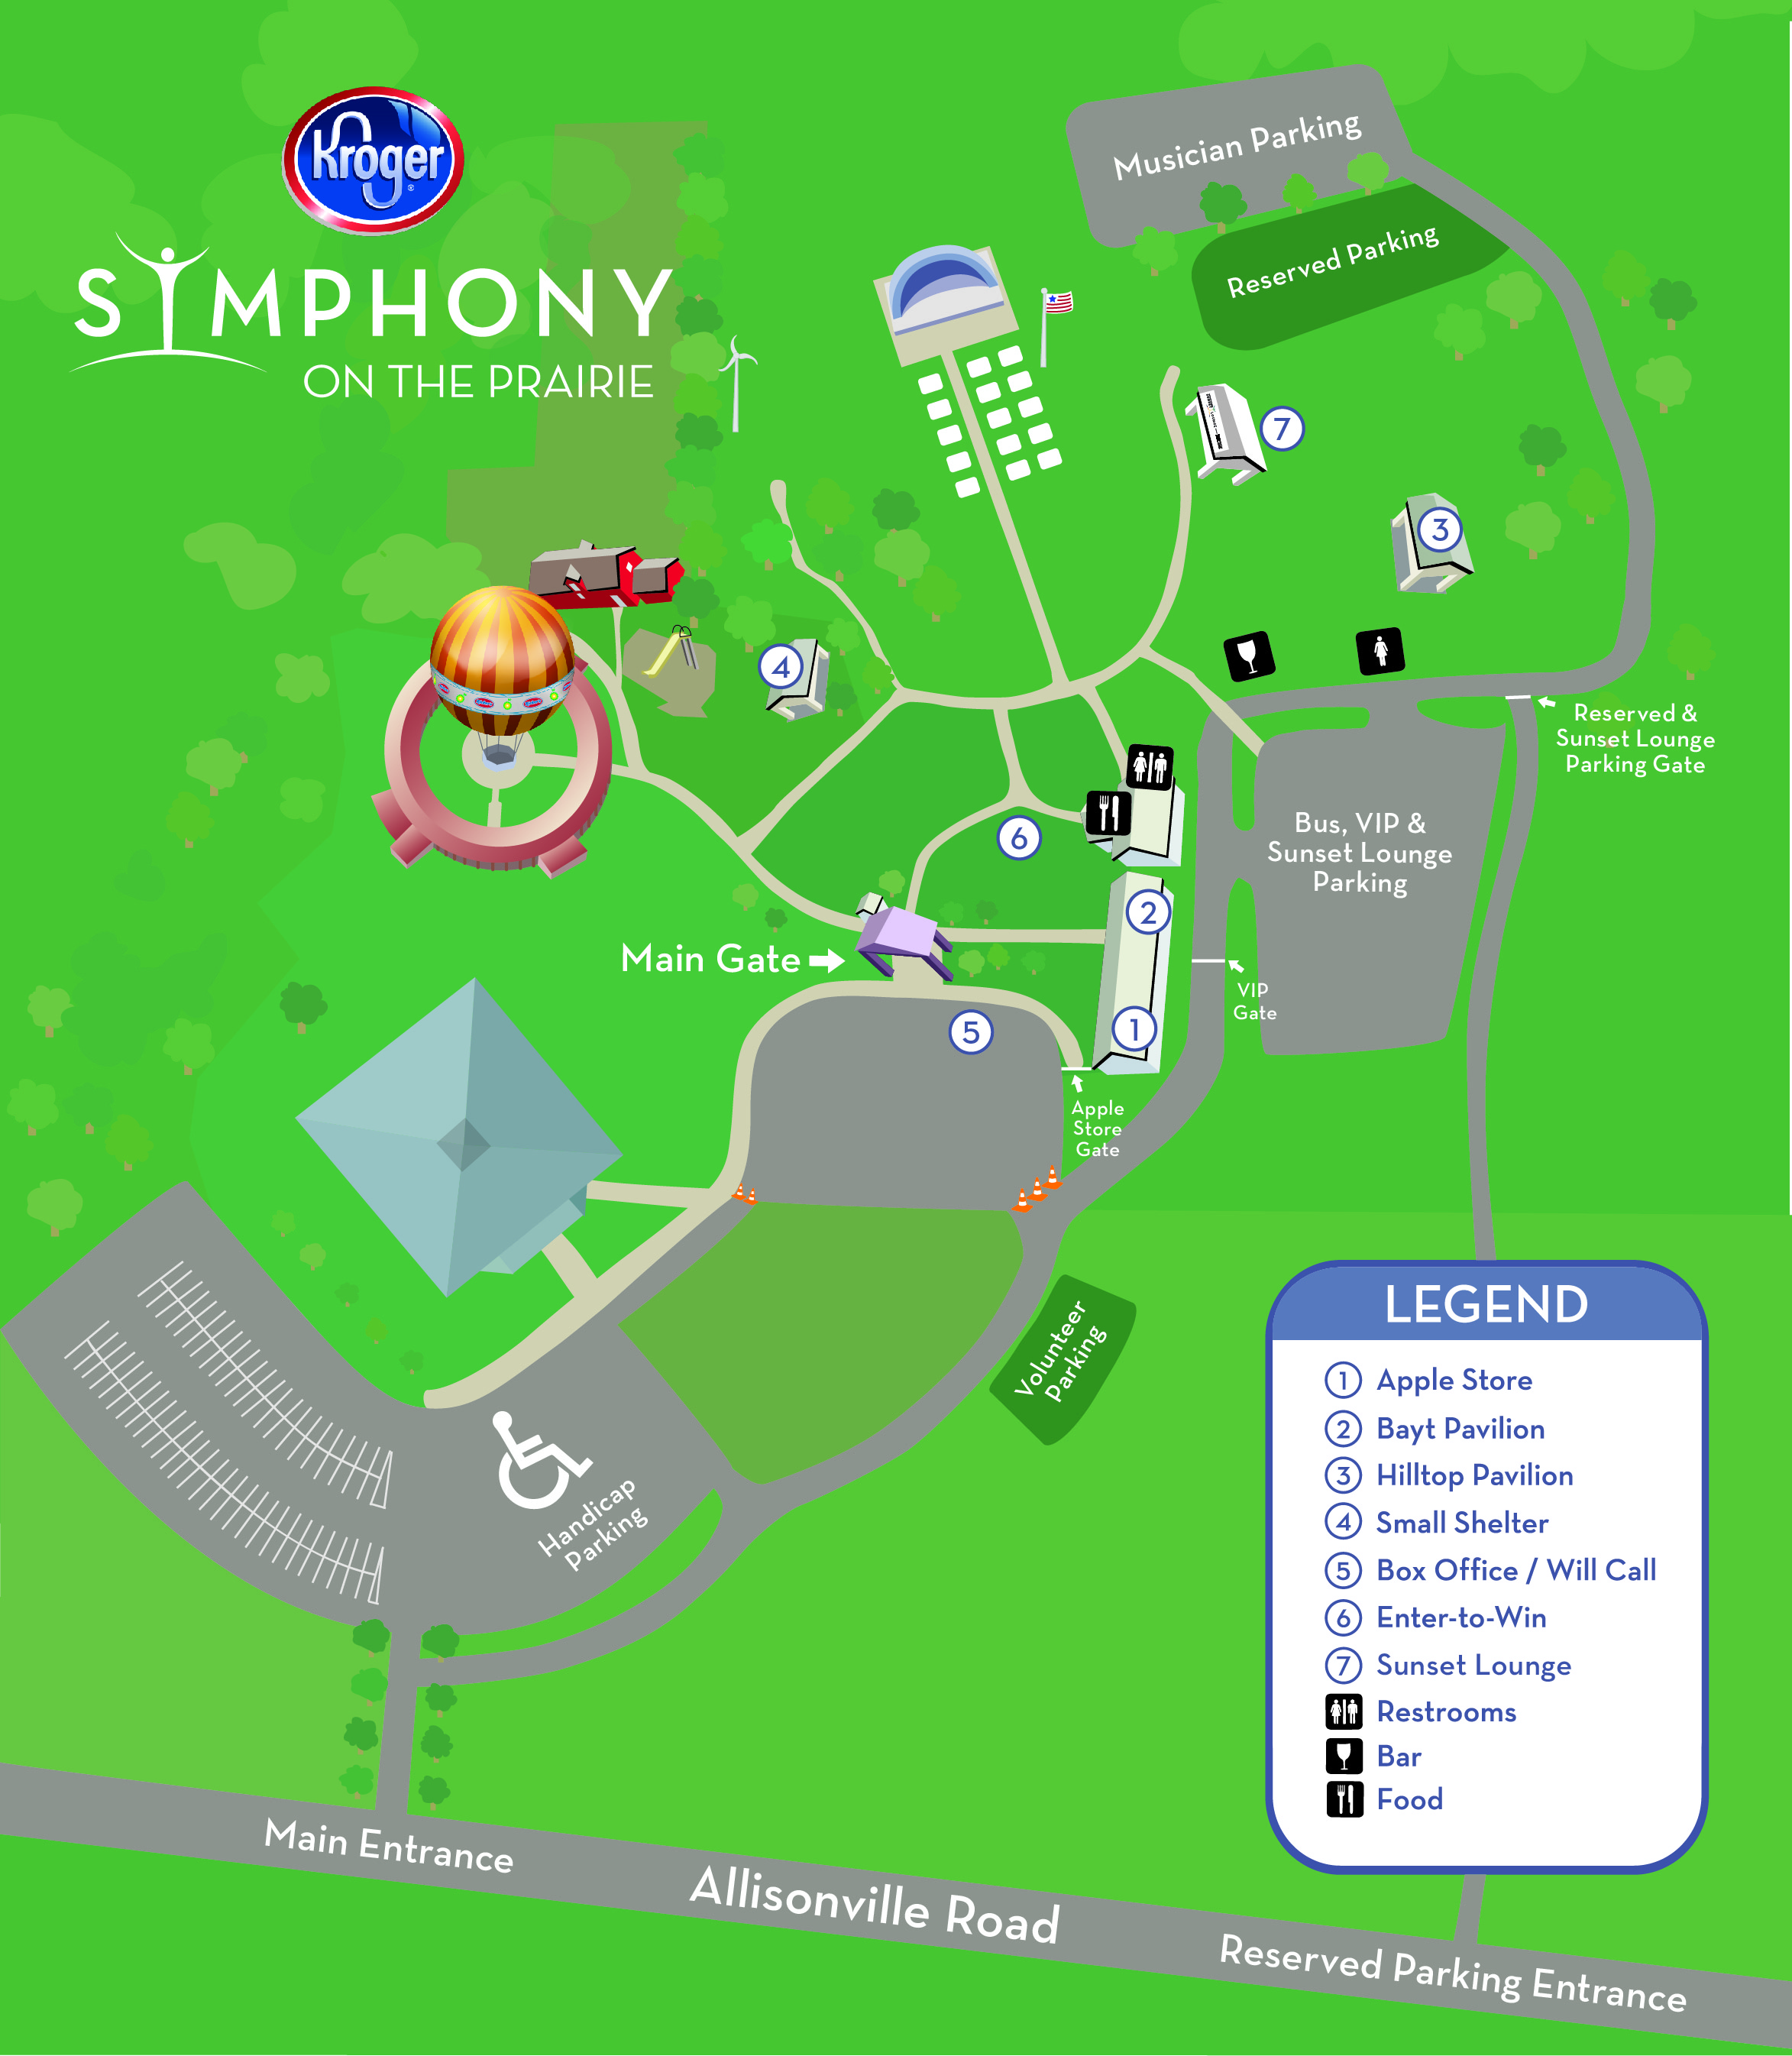 Parking Directions Indianapolis Symphony Orchestra